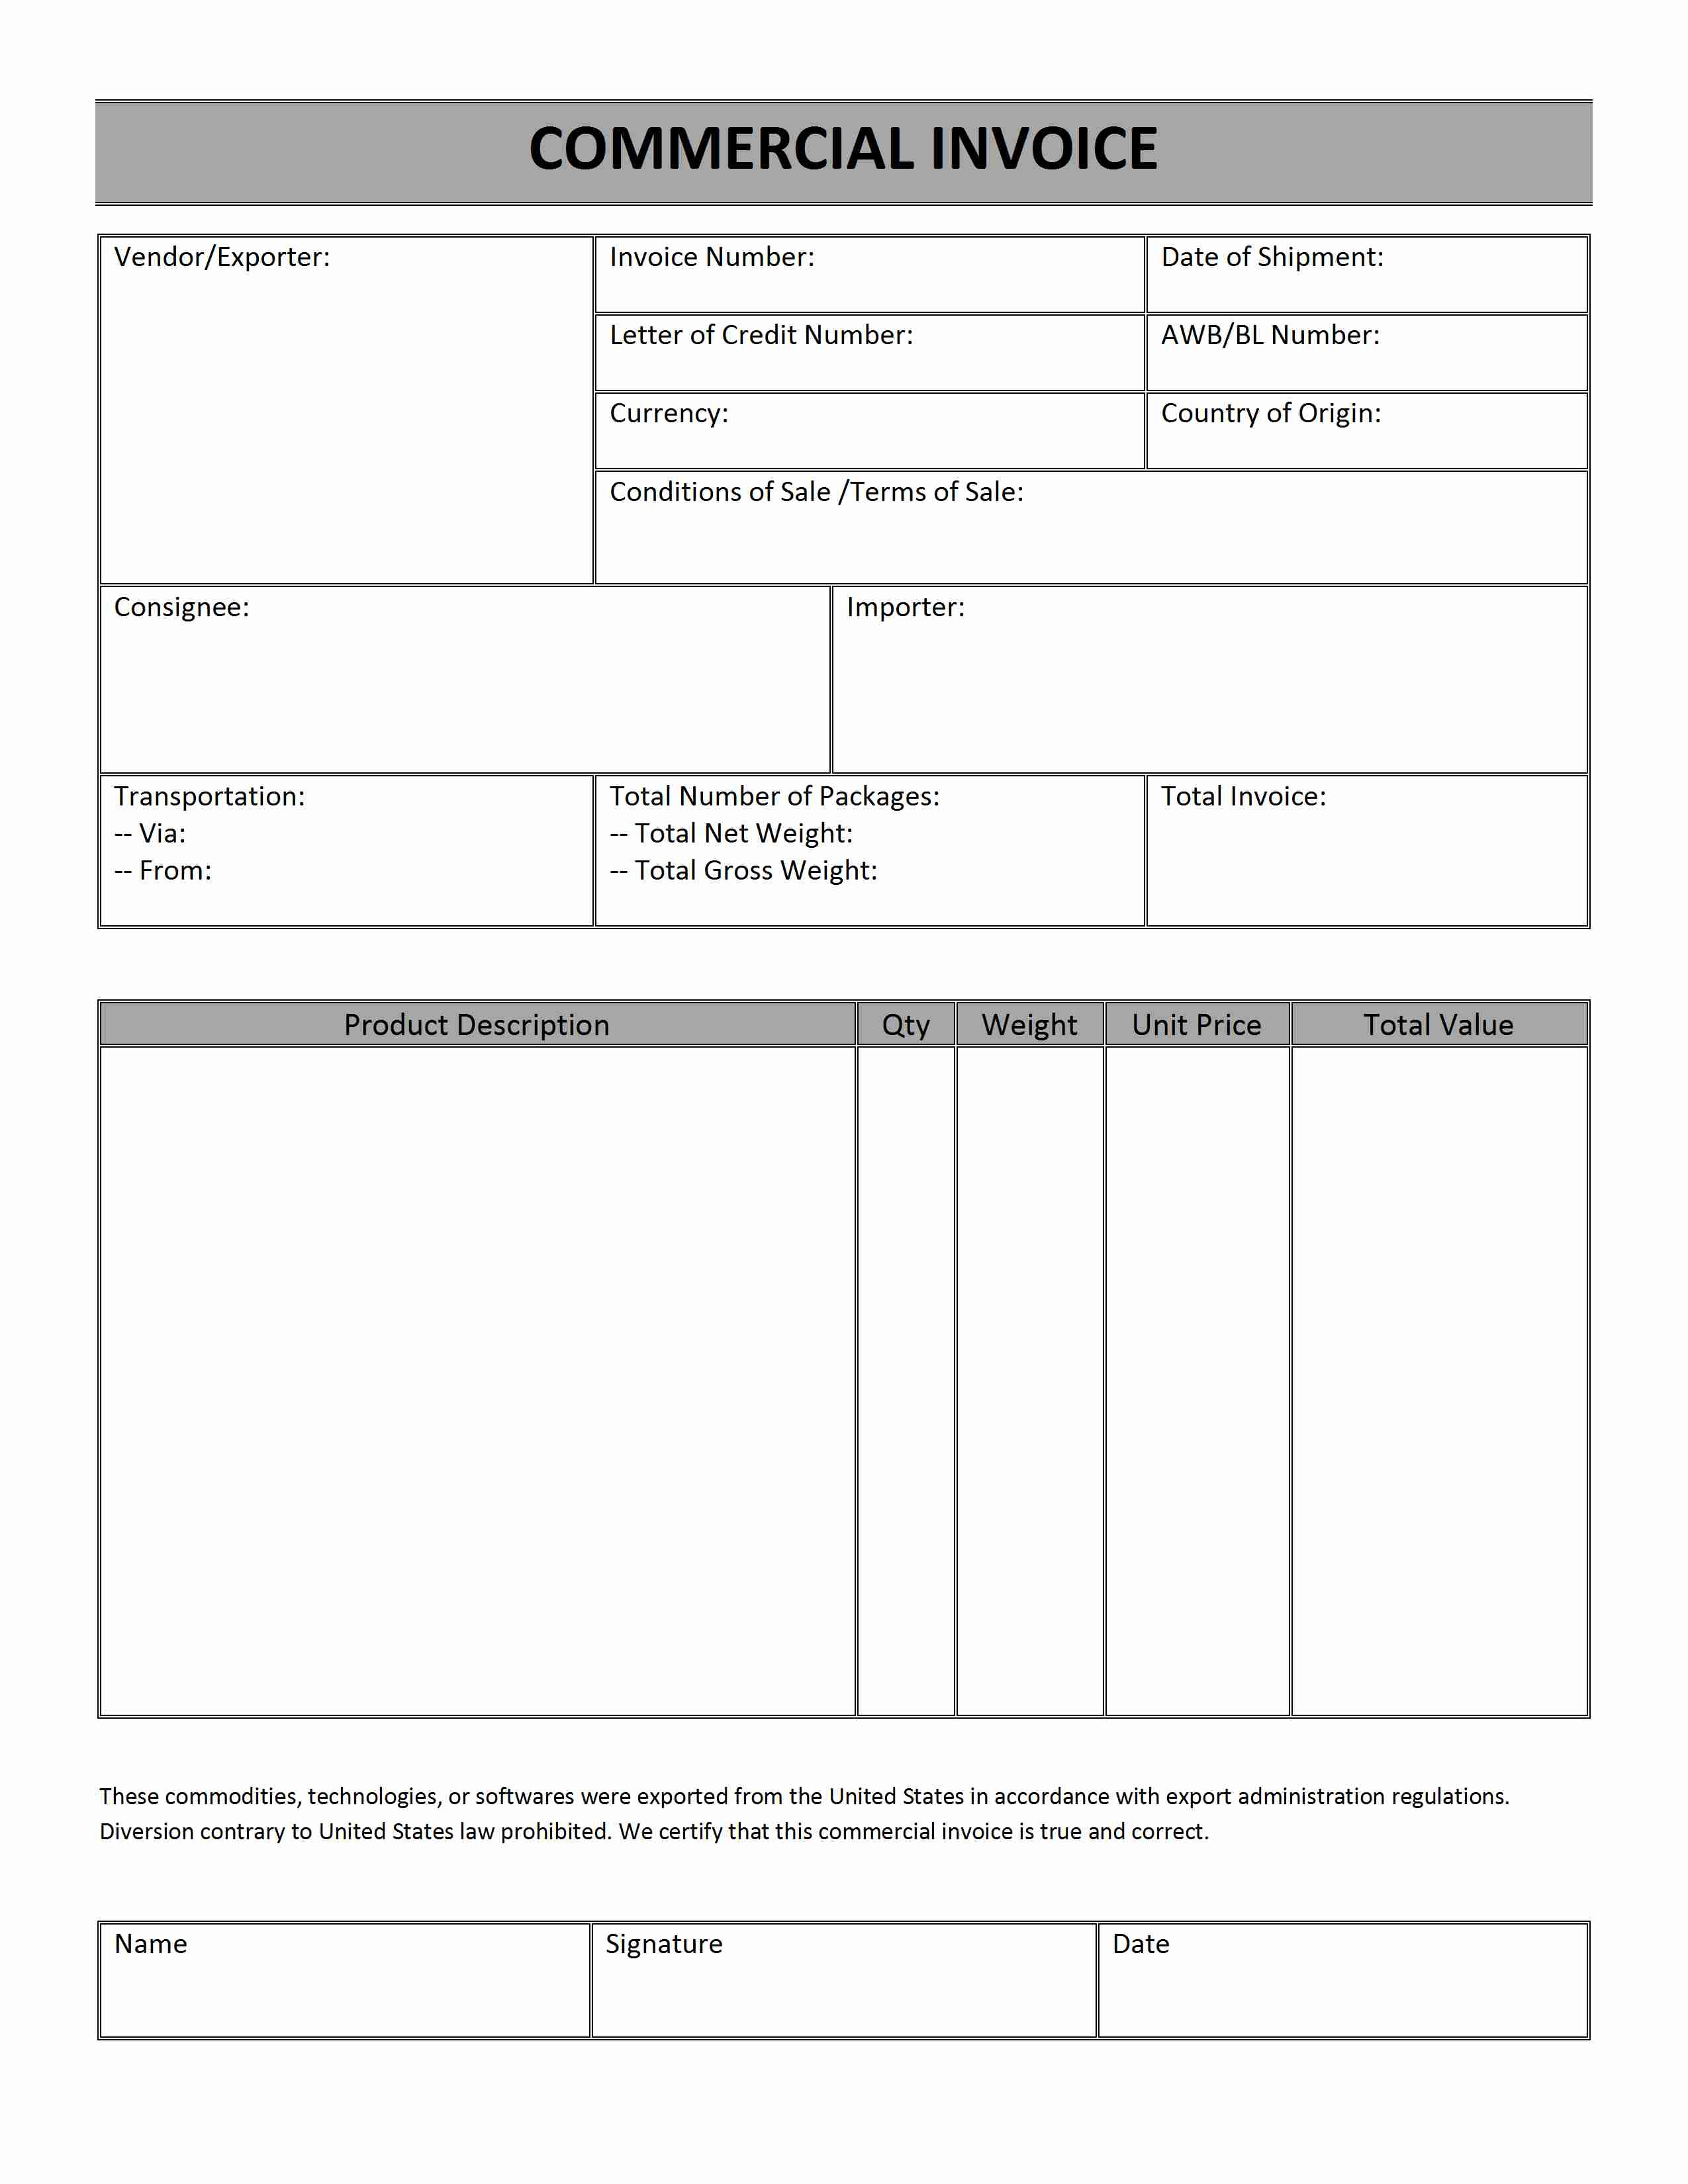 Theologygeekblogus  Unique Printable Sales Invoice Simple Invoice Form Free Invoice  With Lovely Printable Receipt Free  Free Printable Raffle Tickets  Receipt   Printable With Alluring Yrc Commercial Invoice Also Settle Invoice In Addition Invoice Online Free Generator And Free Pdf Invoice Generator As Well As Free Template Invoices Additionally Tax Invoice Software Free Download From Happytomco With Theologygeekblogus  Lovely Printable Sales Invoice Simple Invoice Form Free Invoice  With Alluring Printable Receipt Free  Free Printable Raffle Tickets  Receipt   Printable And Unique Yrc Commercial Invoice Also Settle Invoice In Addition Invoice Online Free Generator From Happytomco